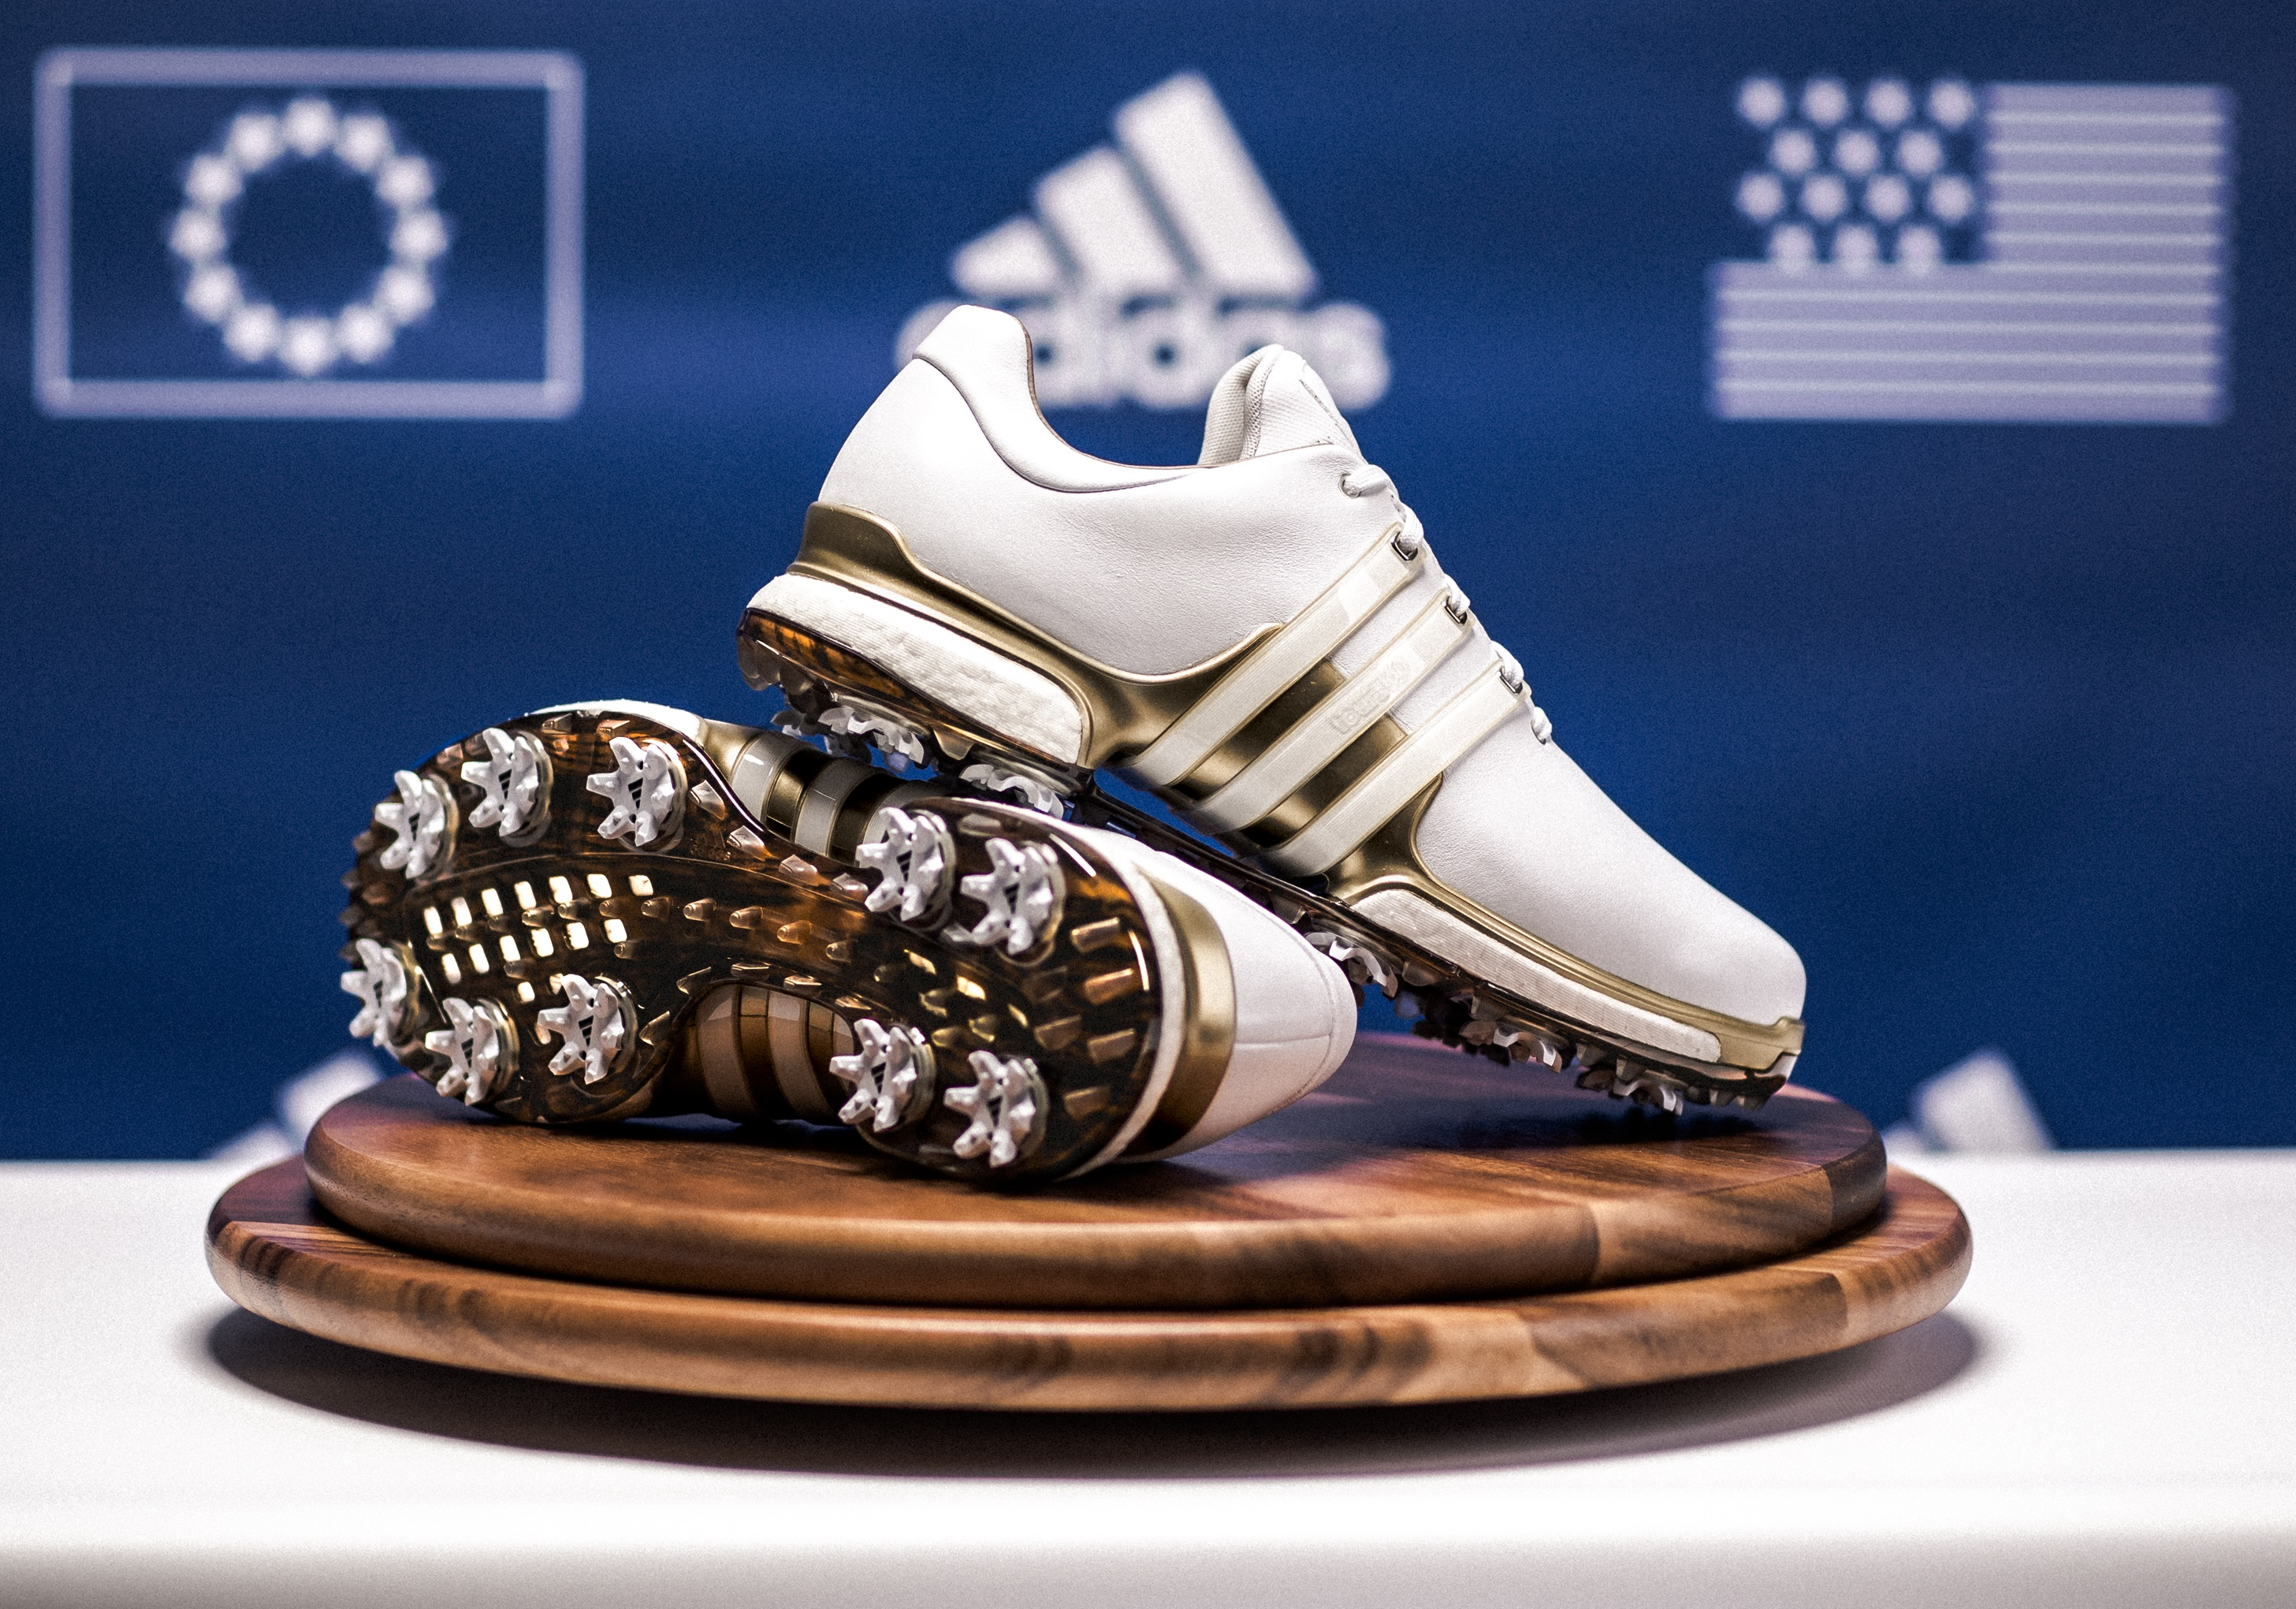 Adidas Tour360 i limited edition Ryder Cup-version